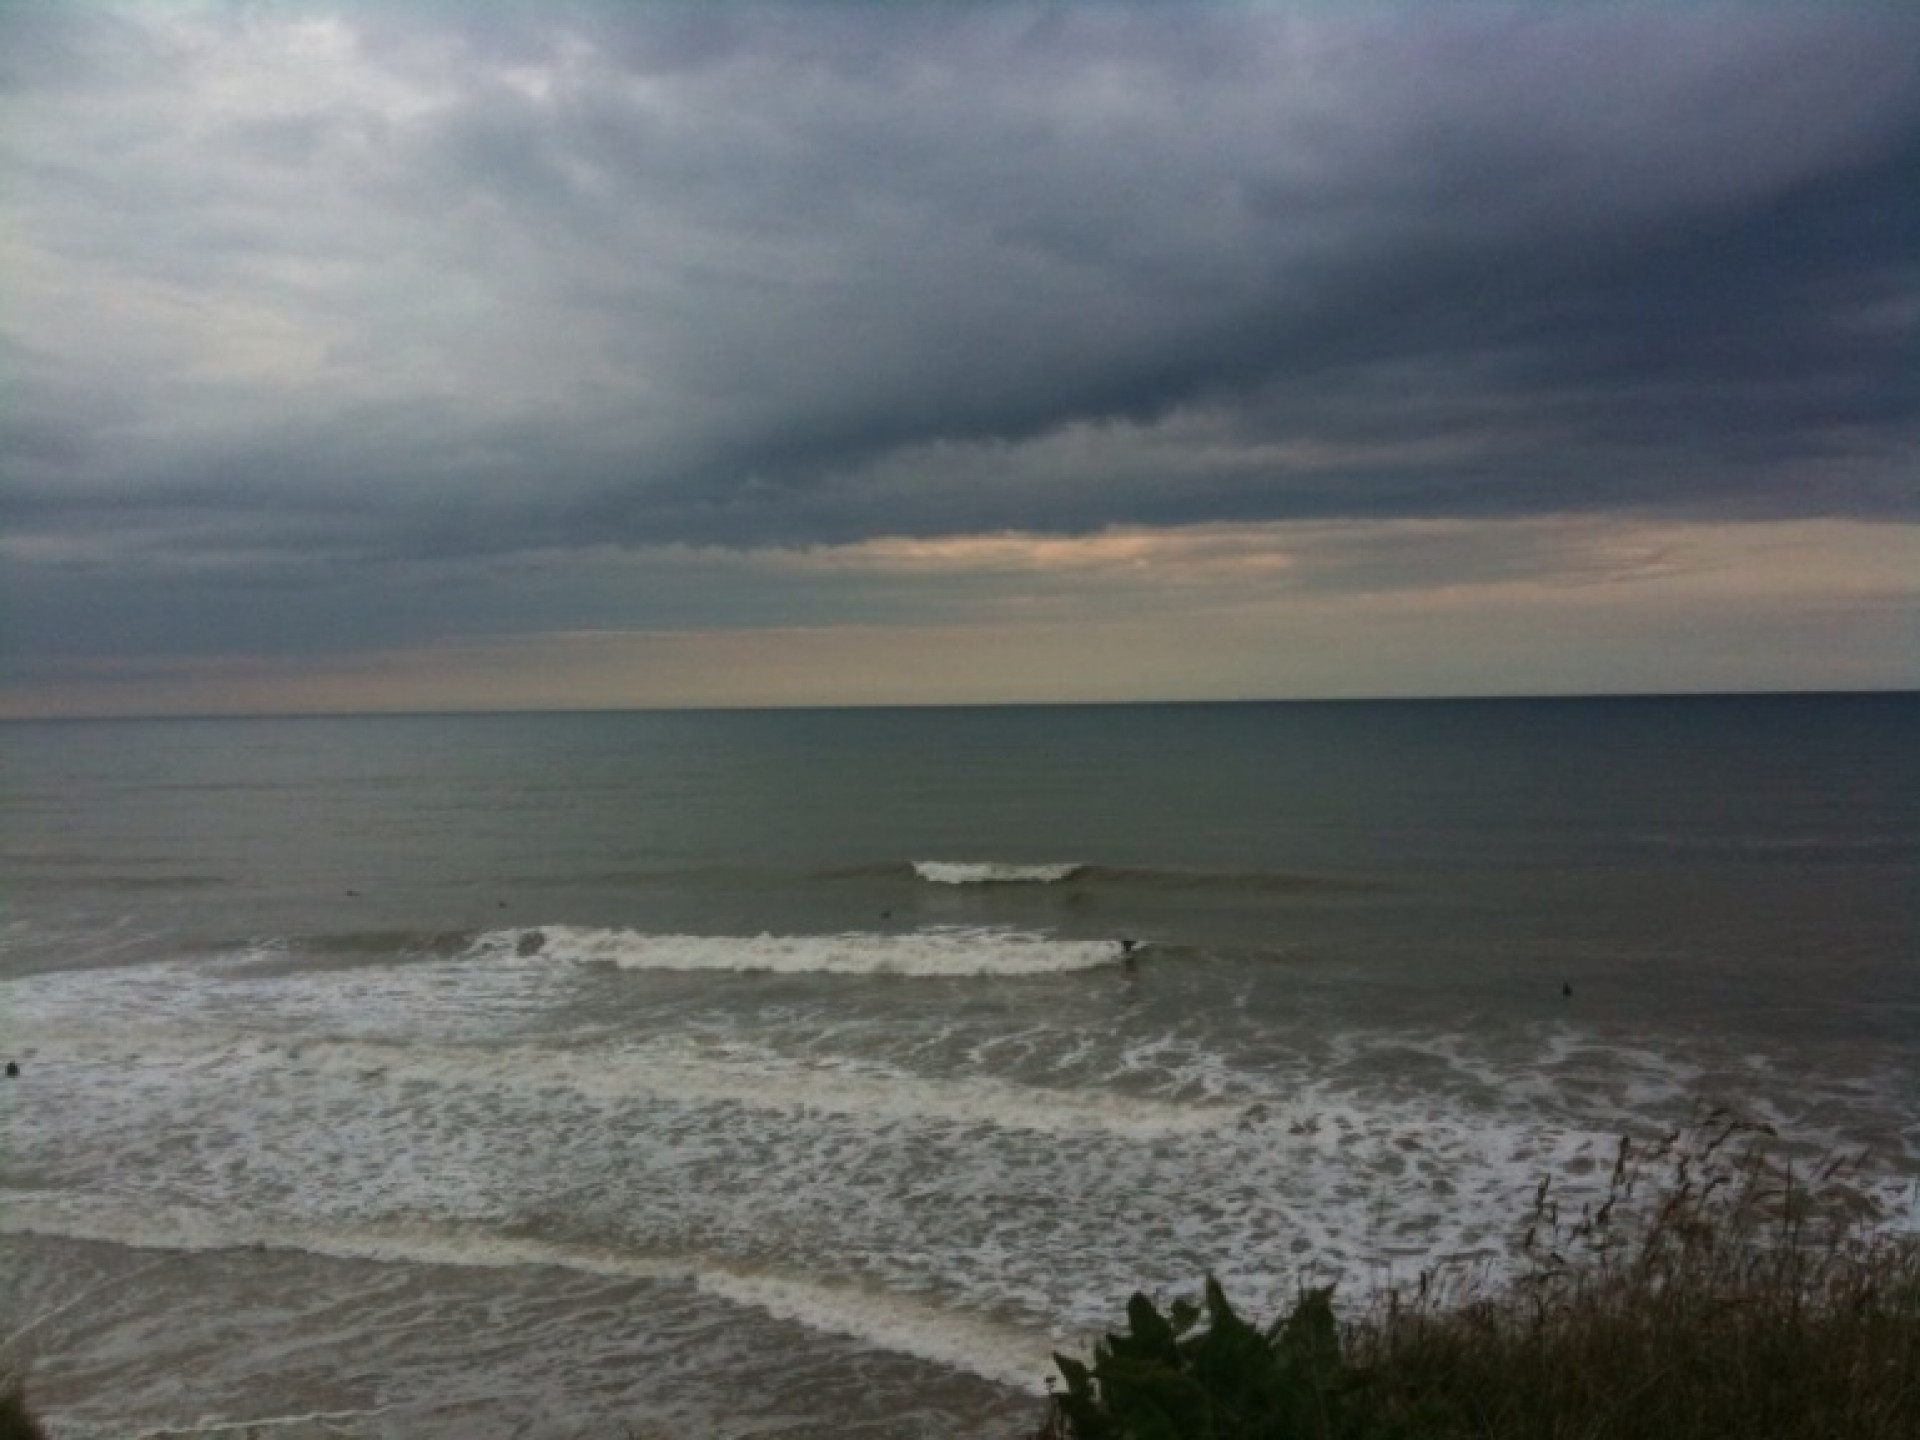 johnfagan's photo of Cromer